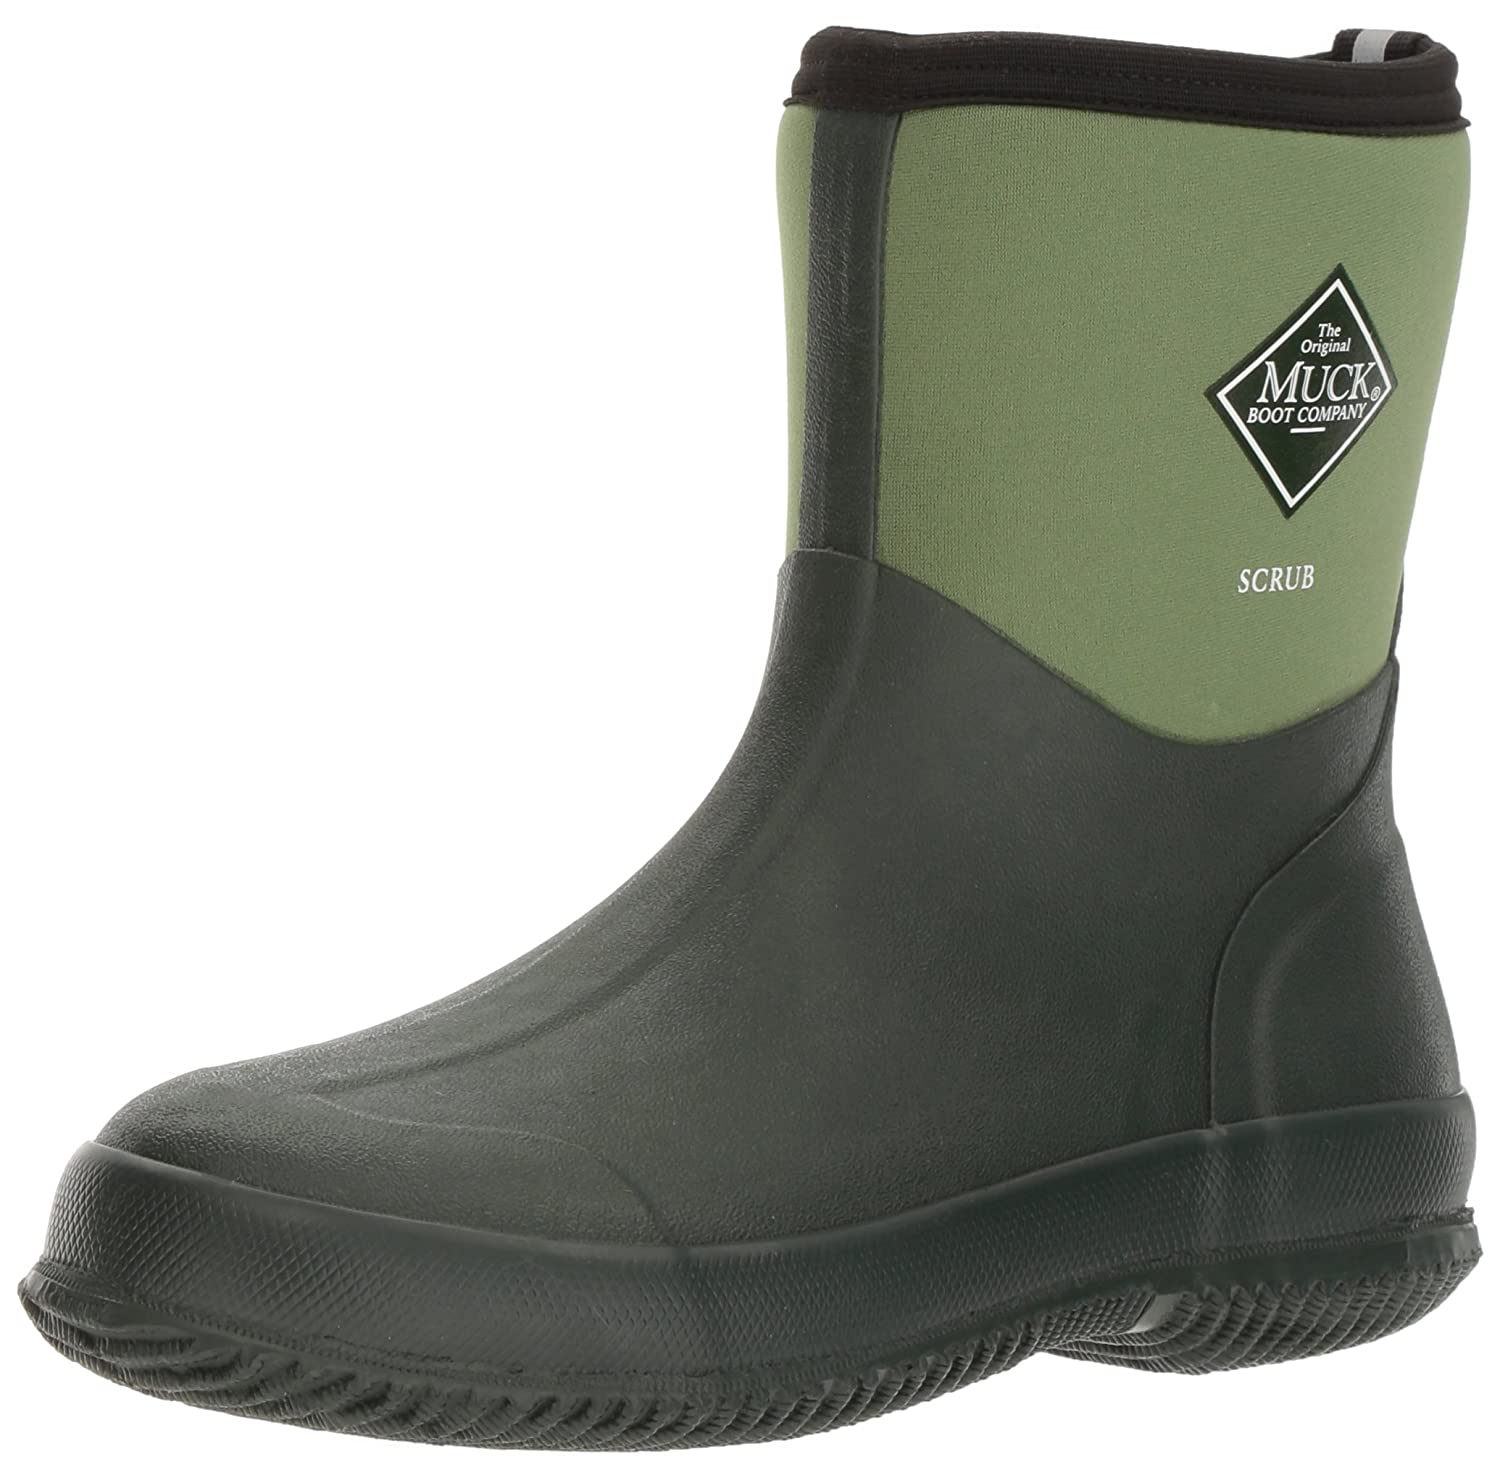 The Original MuckBoots Scrub Boot B000WG7SQ6 Men's 5 M/Women's 6 M|Garden Green